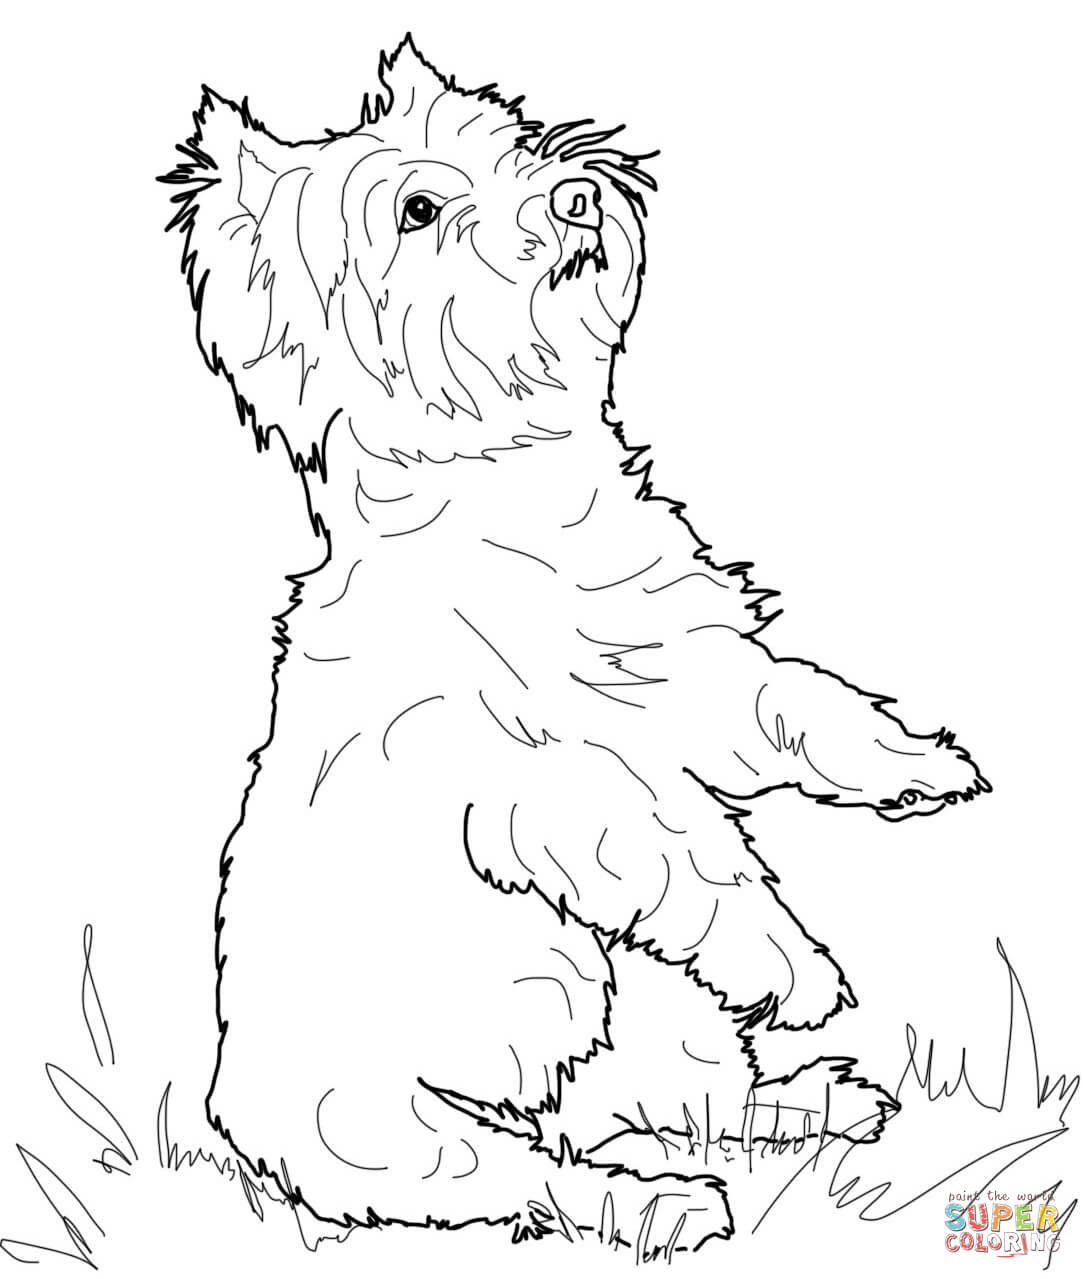 Yorkie clipart cairn terrier. Exploit coloring pages yorkshire